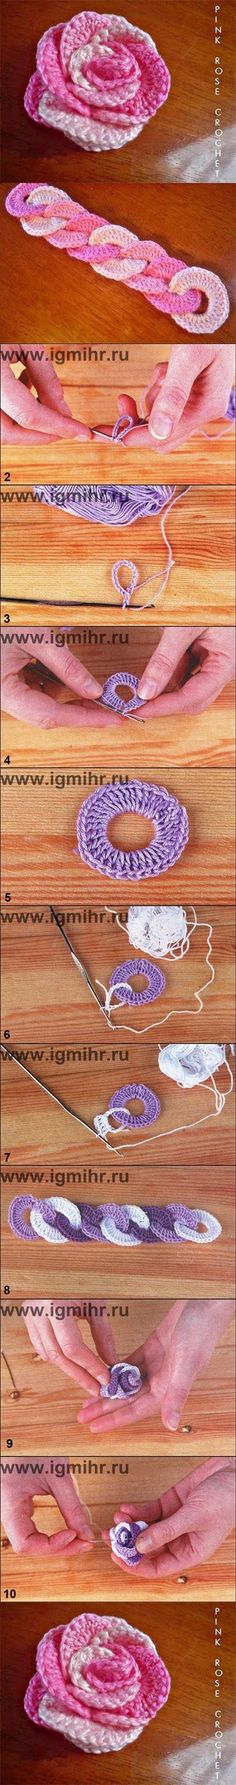 how to DIY Crochet Interlocking Rose, hairband, belt | www.FabArtDIY.com LIKE Us on Facebook ==> https://www.facebook.com/FabArtDIY